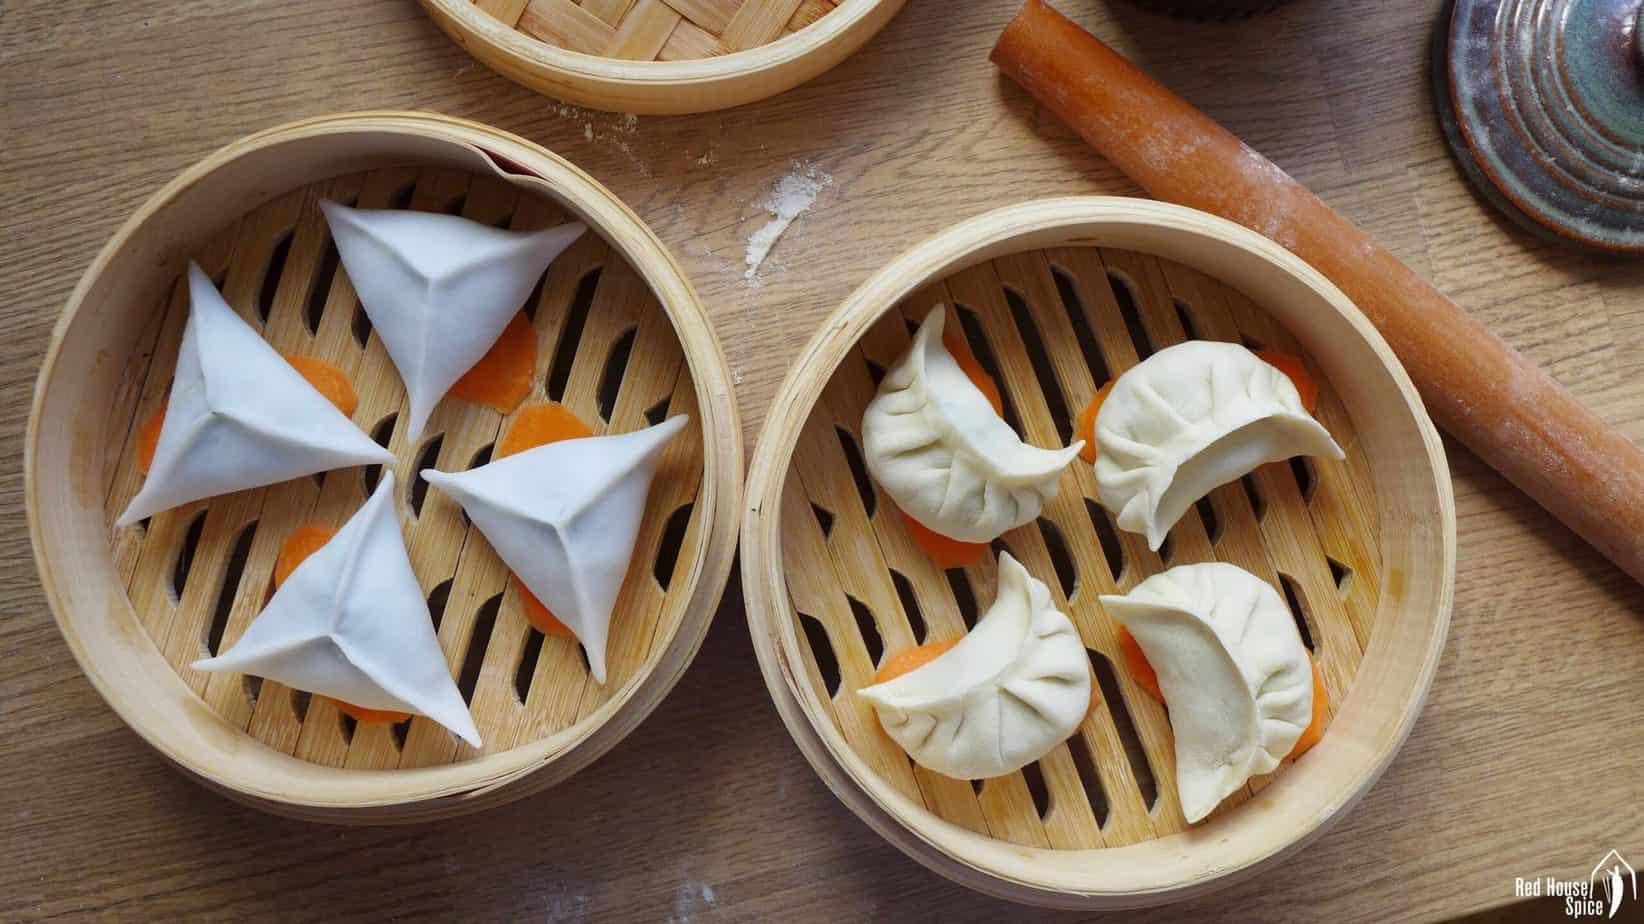 Uncooked dumplings in bamboo steamers